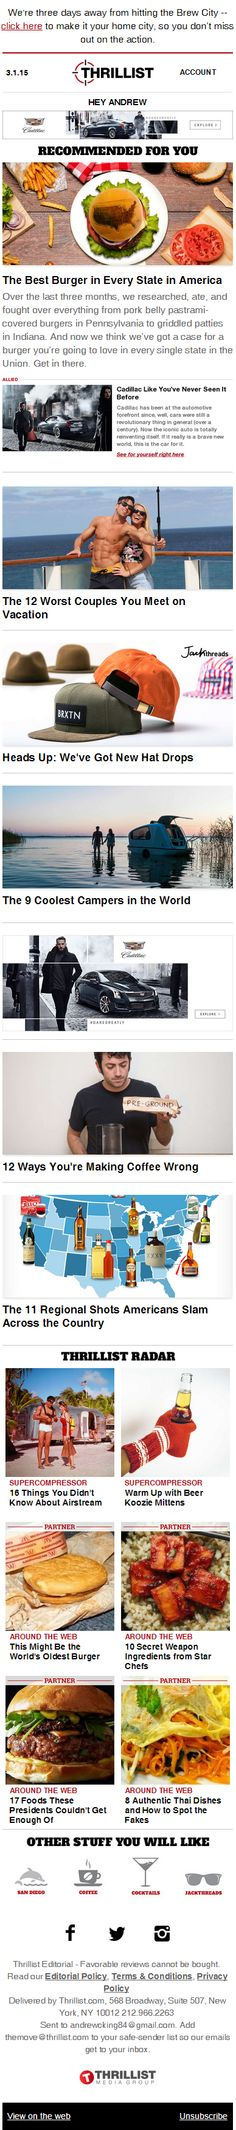 Great content and easy to read responsive design from Thrillist